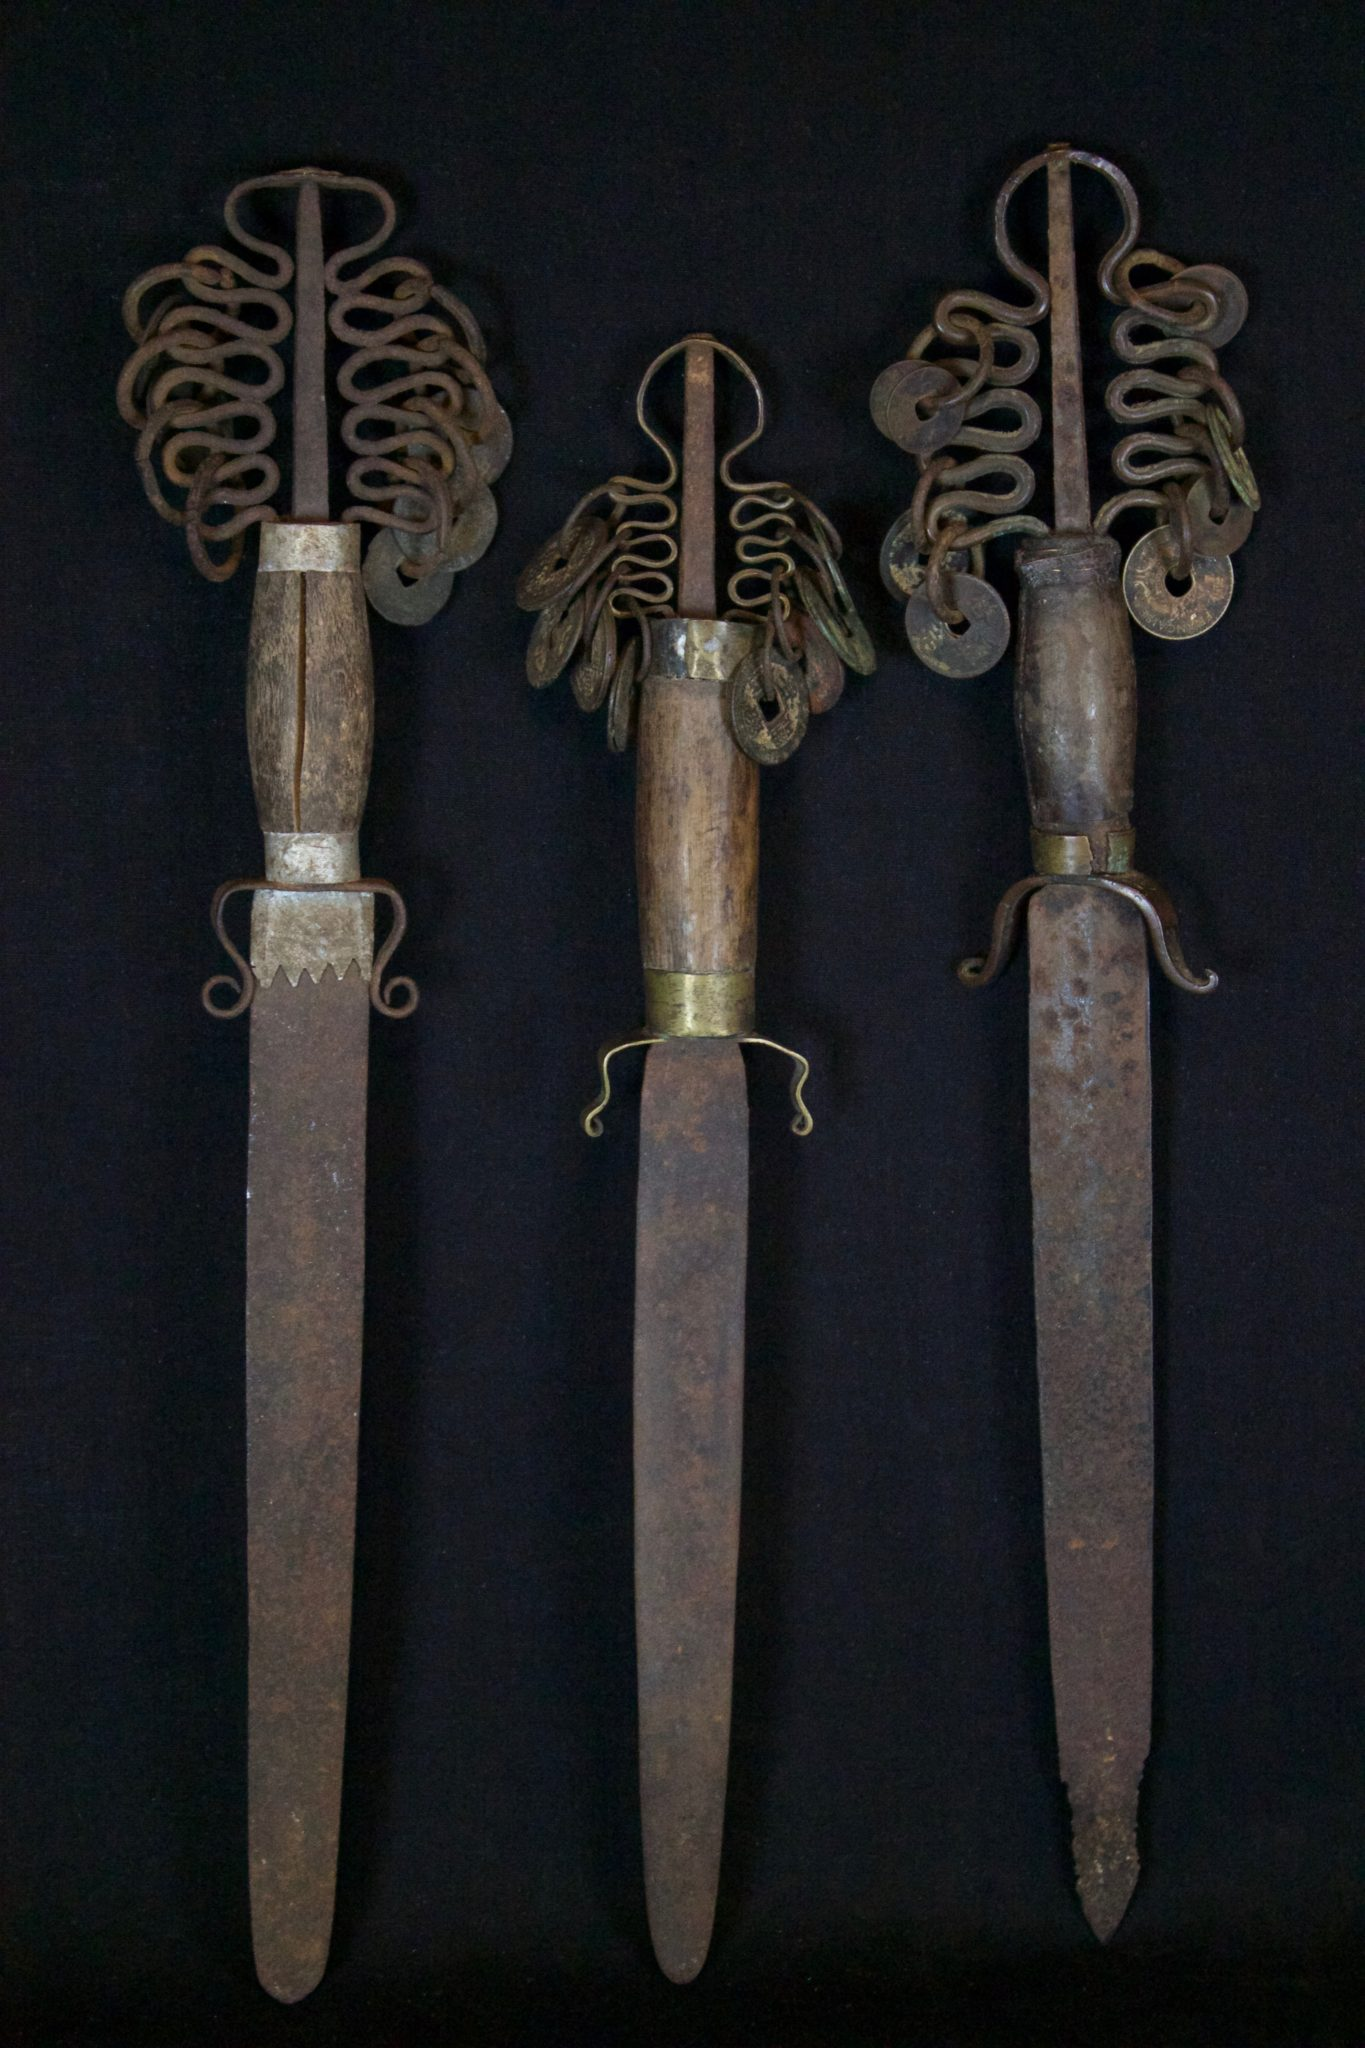 """Ritual Sword, Tuyen Quang province, Vietnam, Yao people, Early 20th c, Iron blade, aluminum bands, wood handle, metal coins, darkened patina from use and age An essential item for any Yao shaman ritual. Used to summon gods and goddesses and to punish disobedient spirits. Harmless to mortals but a formidable weapon when shaken against evil spirits. This is a male sword - top detail differs on female swords. $295. each, Dimensions left to right, (left - 15 ¼"""" x 3 ¼"""" x 1""""); (middle - 15 ¼"""" x 3 ¼"""" x 1""""); (right -13 ¾"""" x 3"""" x 1"""")"""